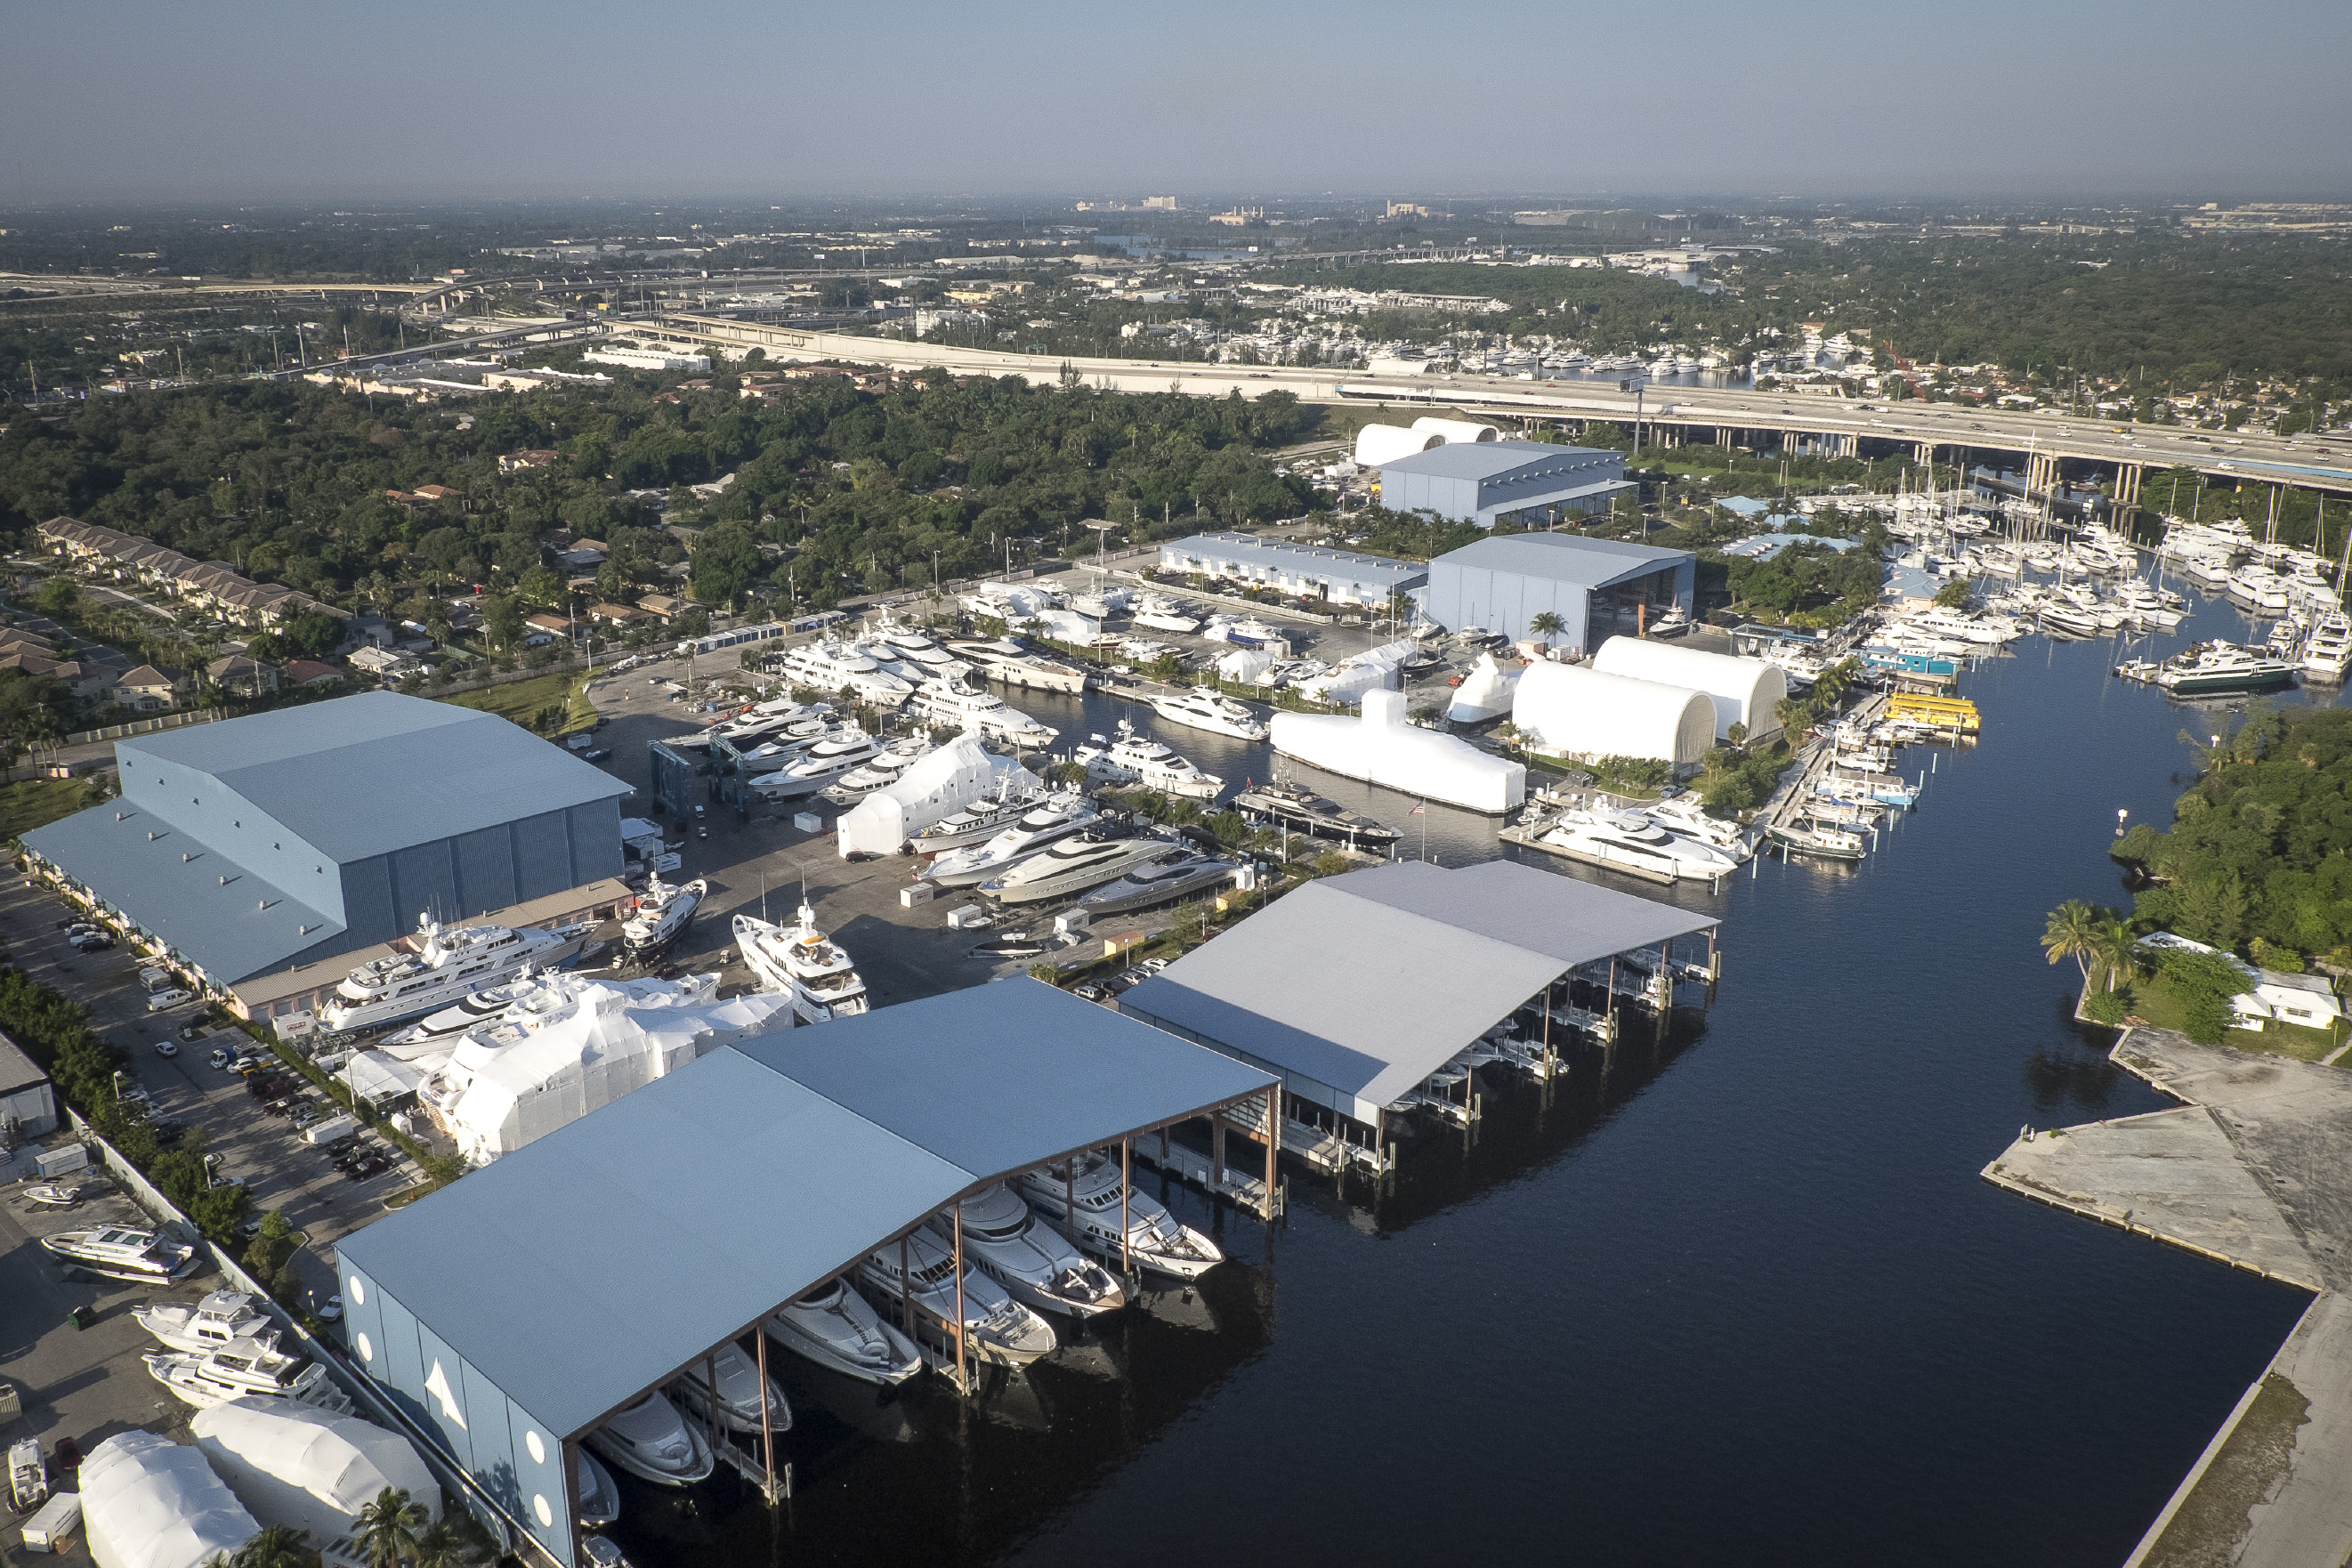 Arial photo of the Lauderdale Marine Center in Fort Lauderdale